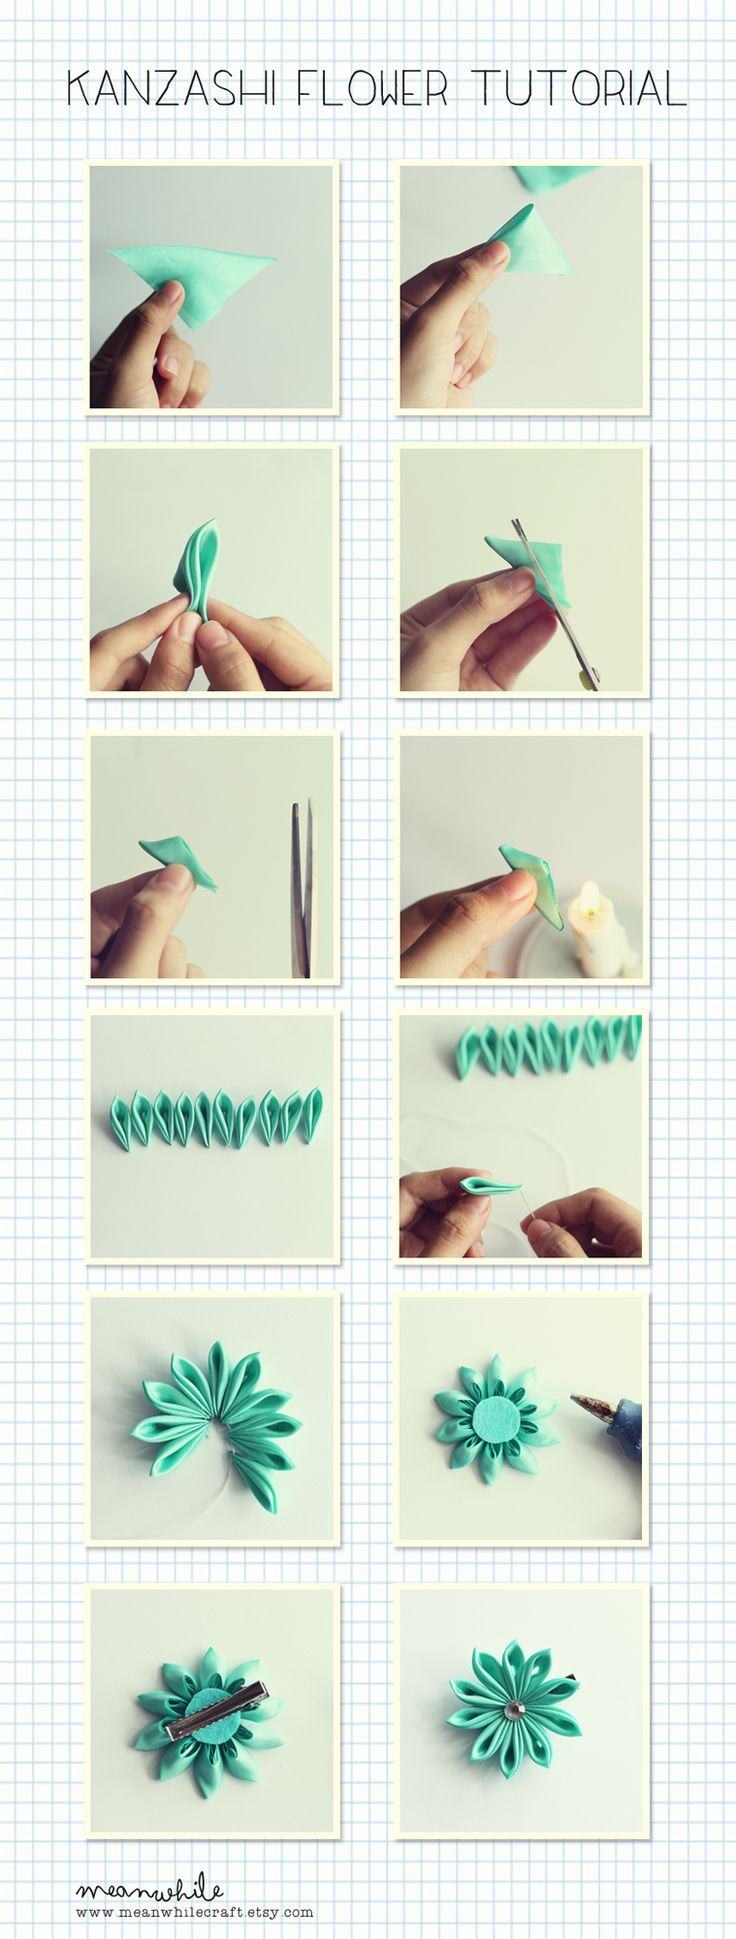 Kanzashi flower tutorial by MeanwhileCraft                                                                                                                                                     More